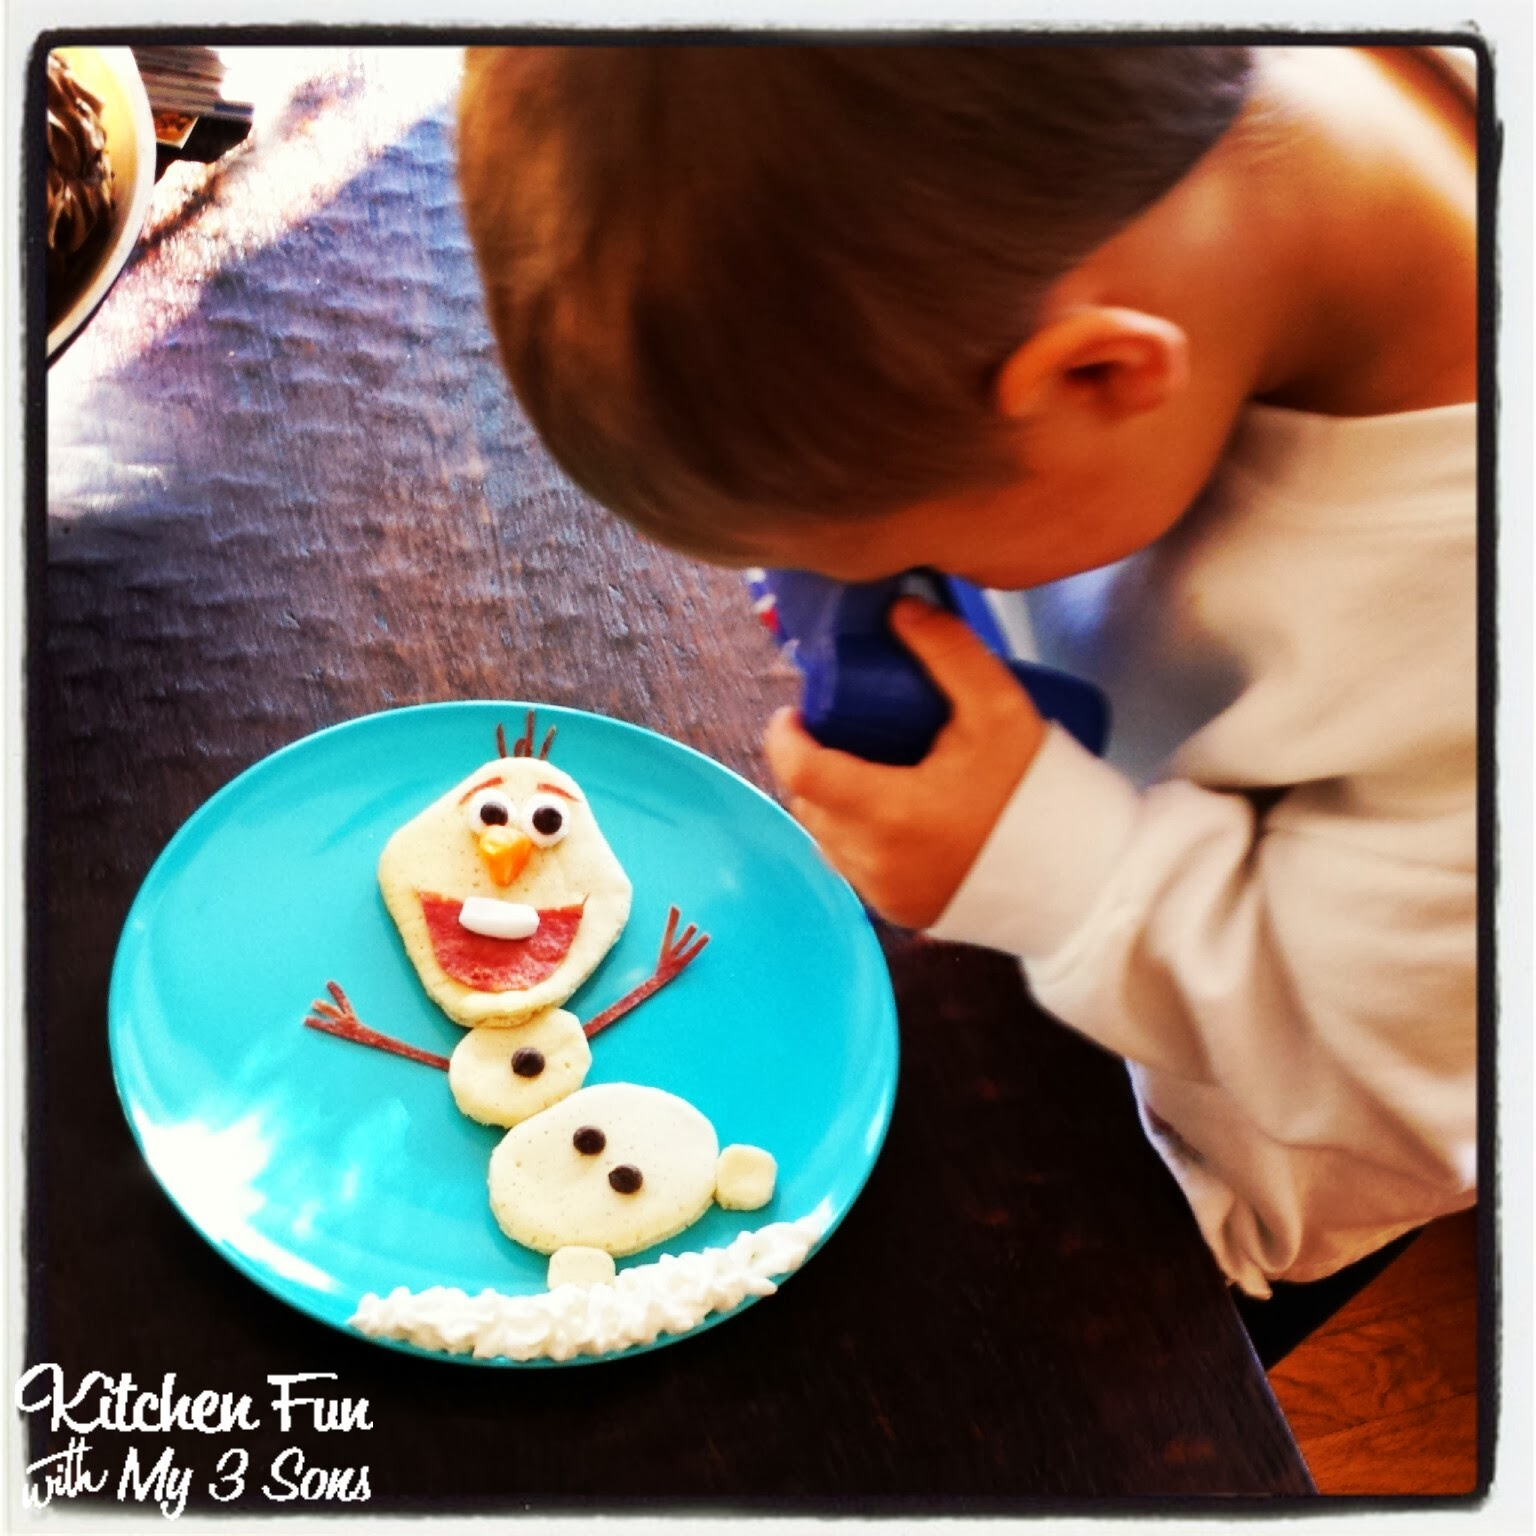 He was so excited to get his olaf pancakes amp couldn t stop smiling at